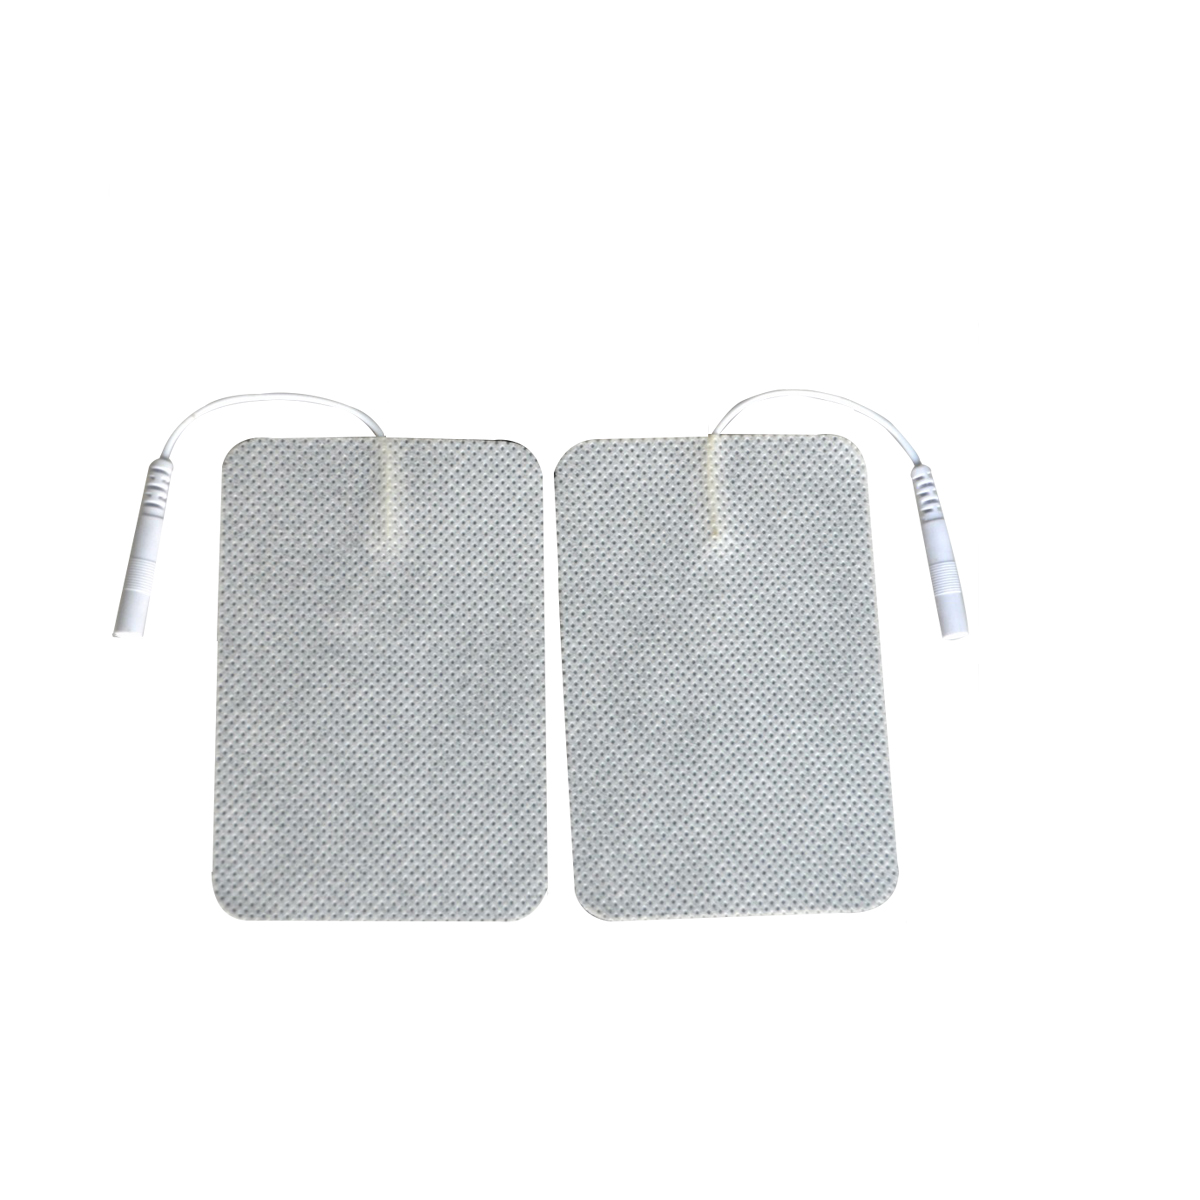 50Pairs/Lot Electrode Connecting Lead Wire Cable Replacement Pads For Tens Therapy Massager Plug 2mm 6x9cm Self Adhesive Gel 50pairs lot emergency supplies ecg defibrillation electrode patch prompt aed defibrillator trainer accessories not for clinical